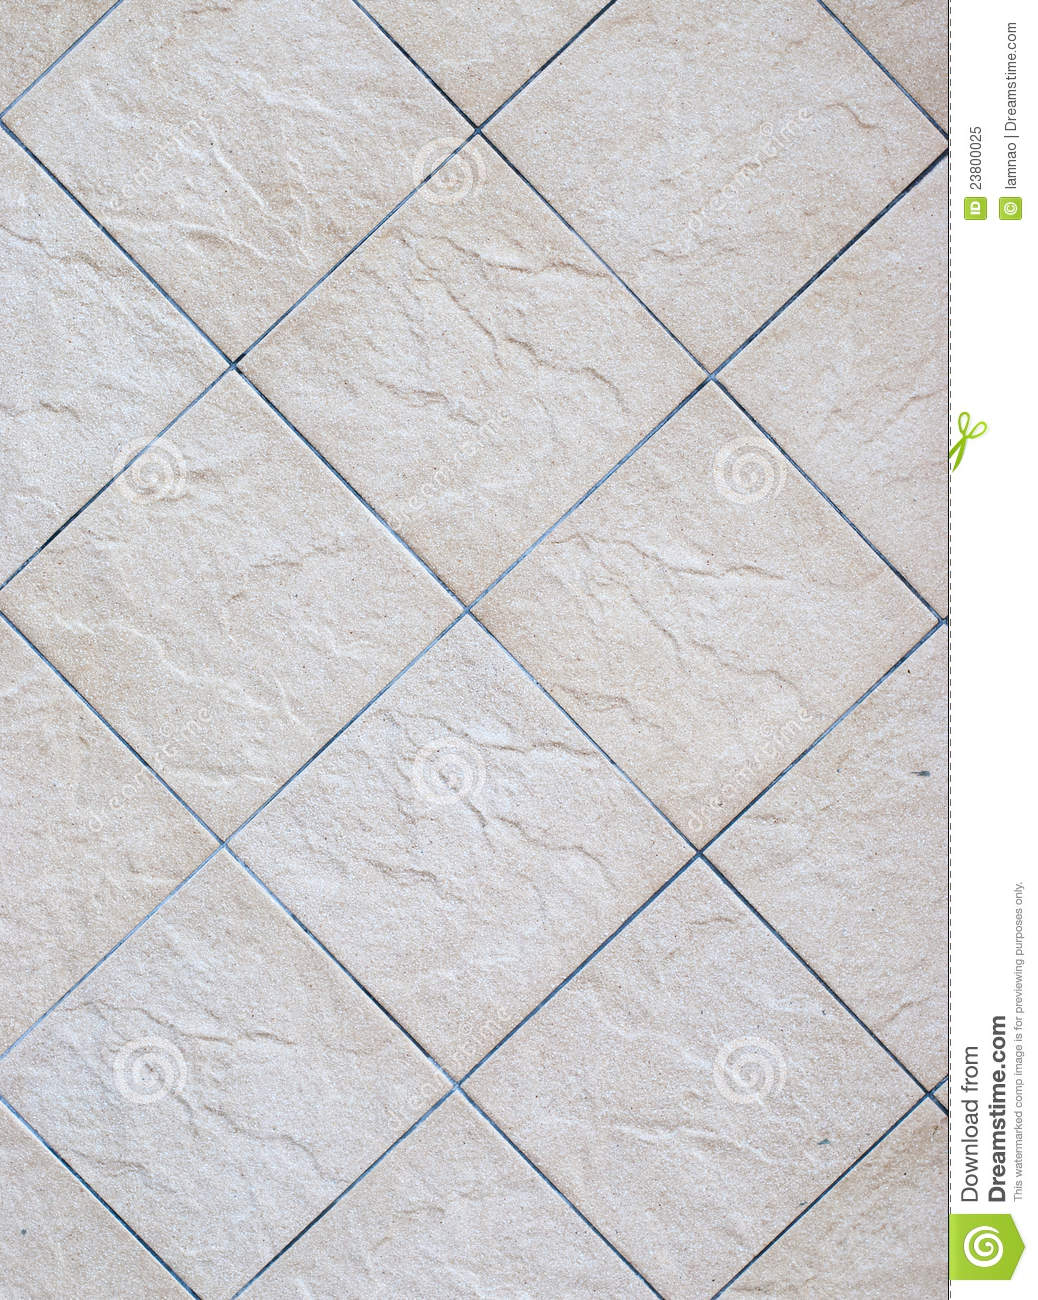 Concrete Floor Texture Stock Image Image Of Structure